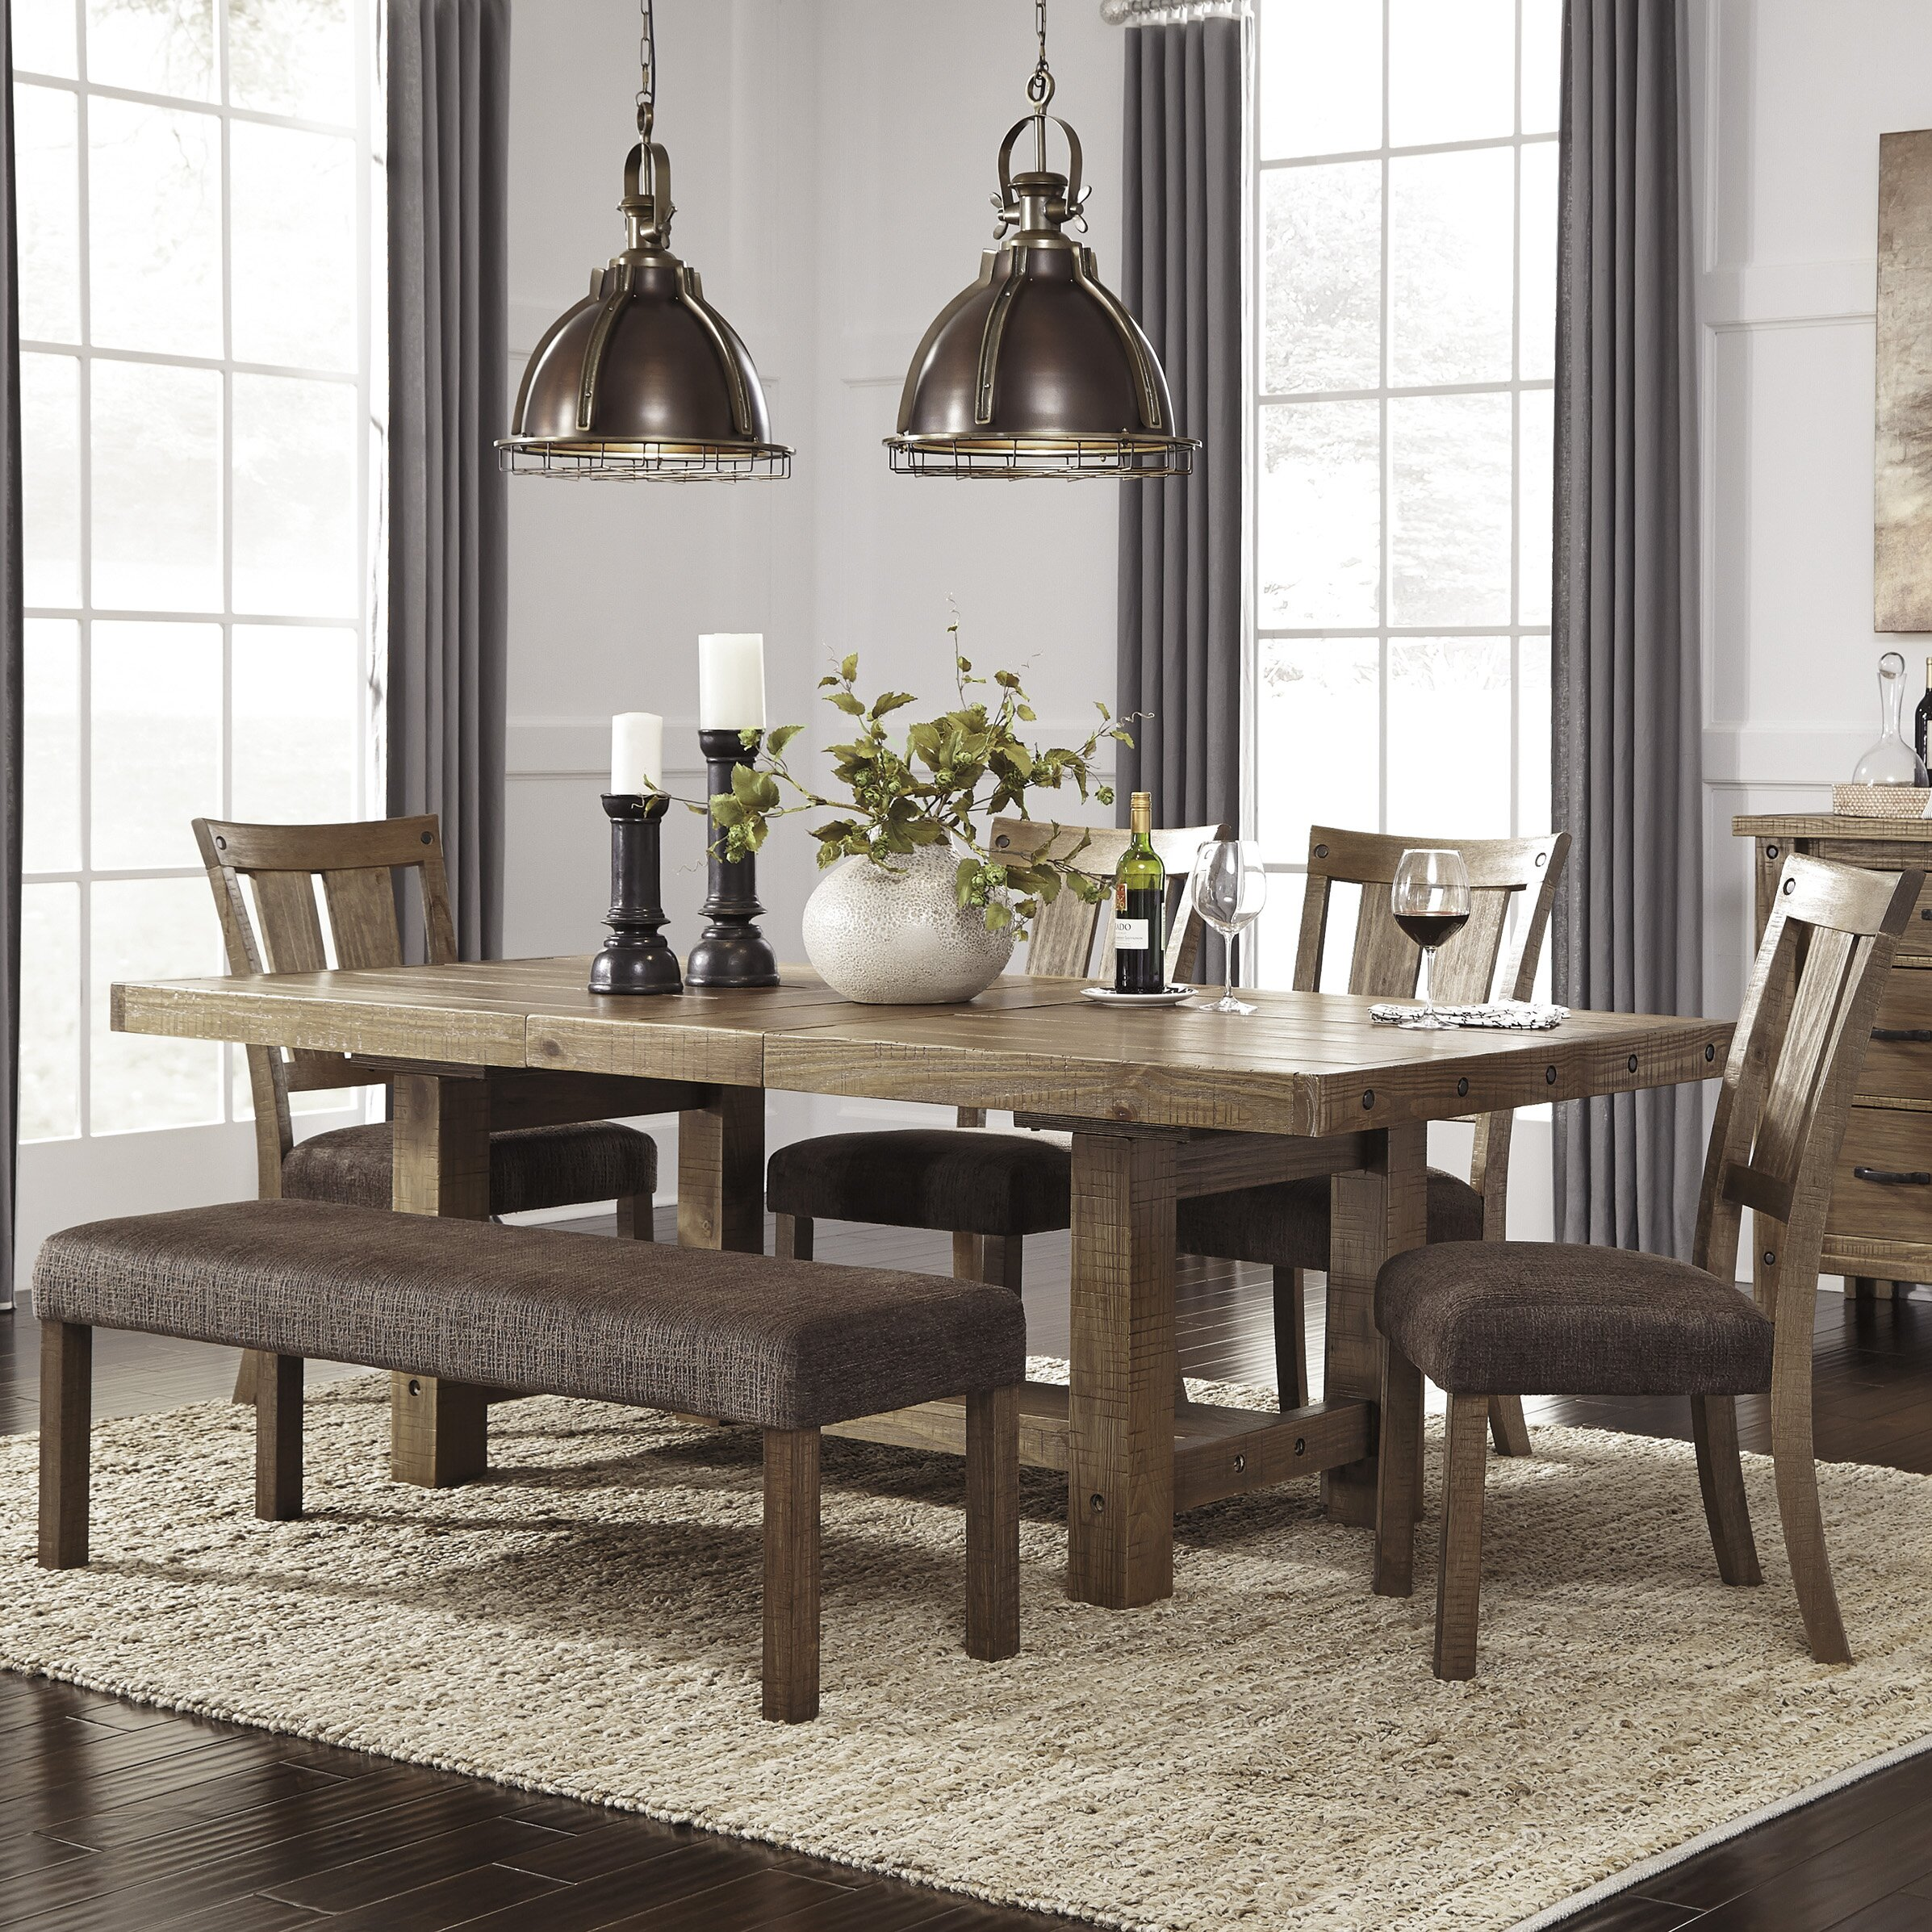 Signature design by ashley 9 piece dining set reviews for Dining room sets